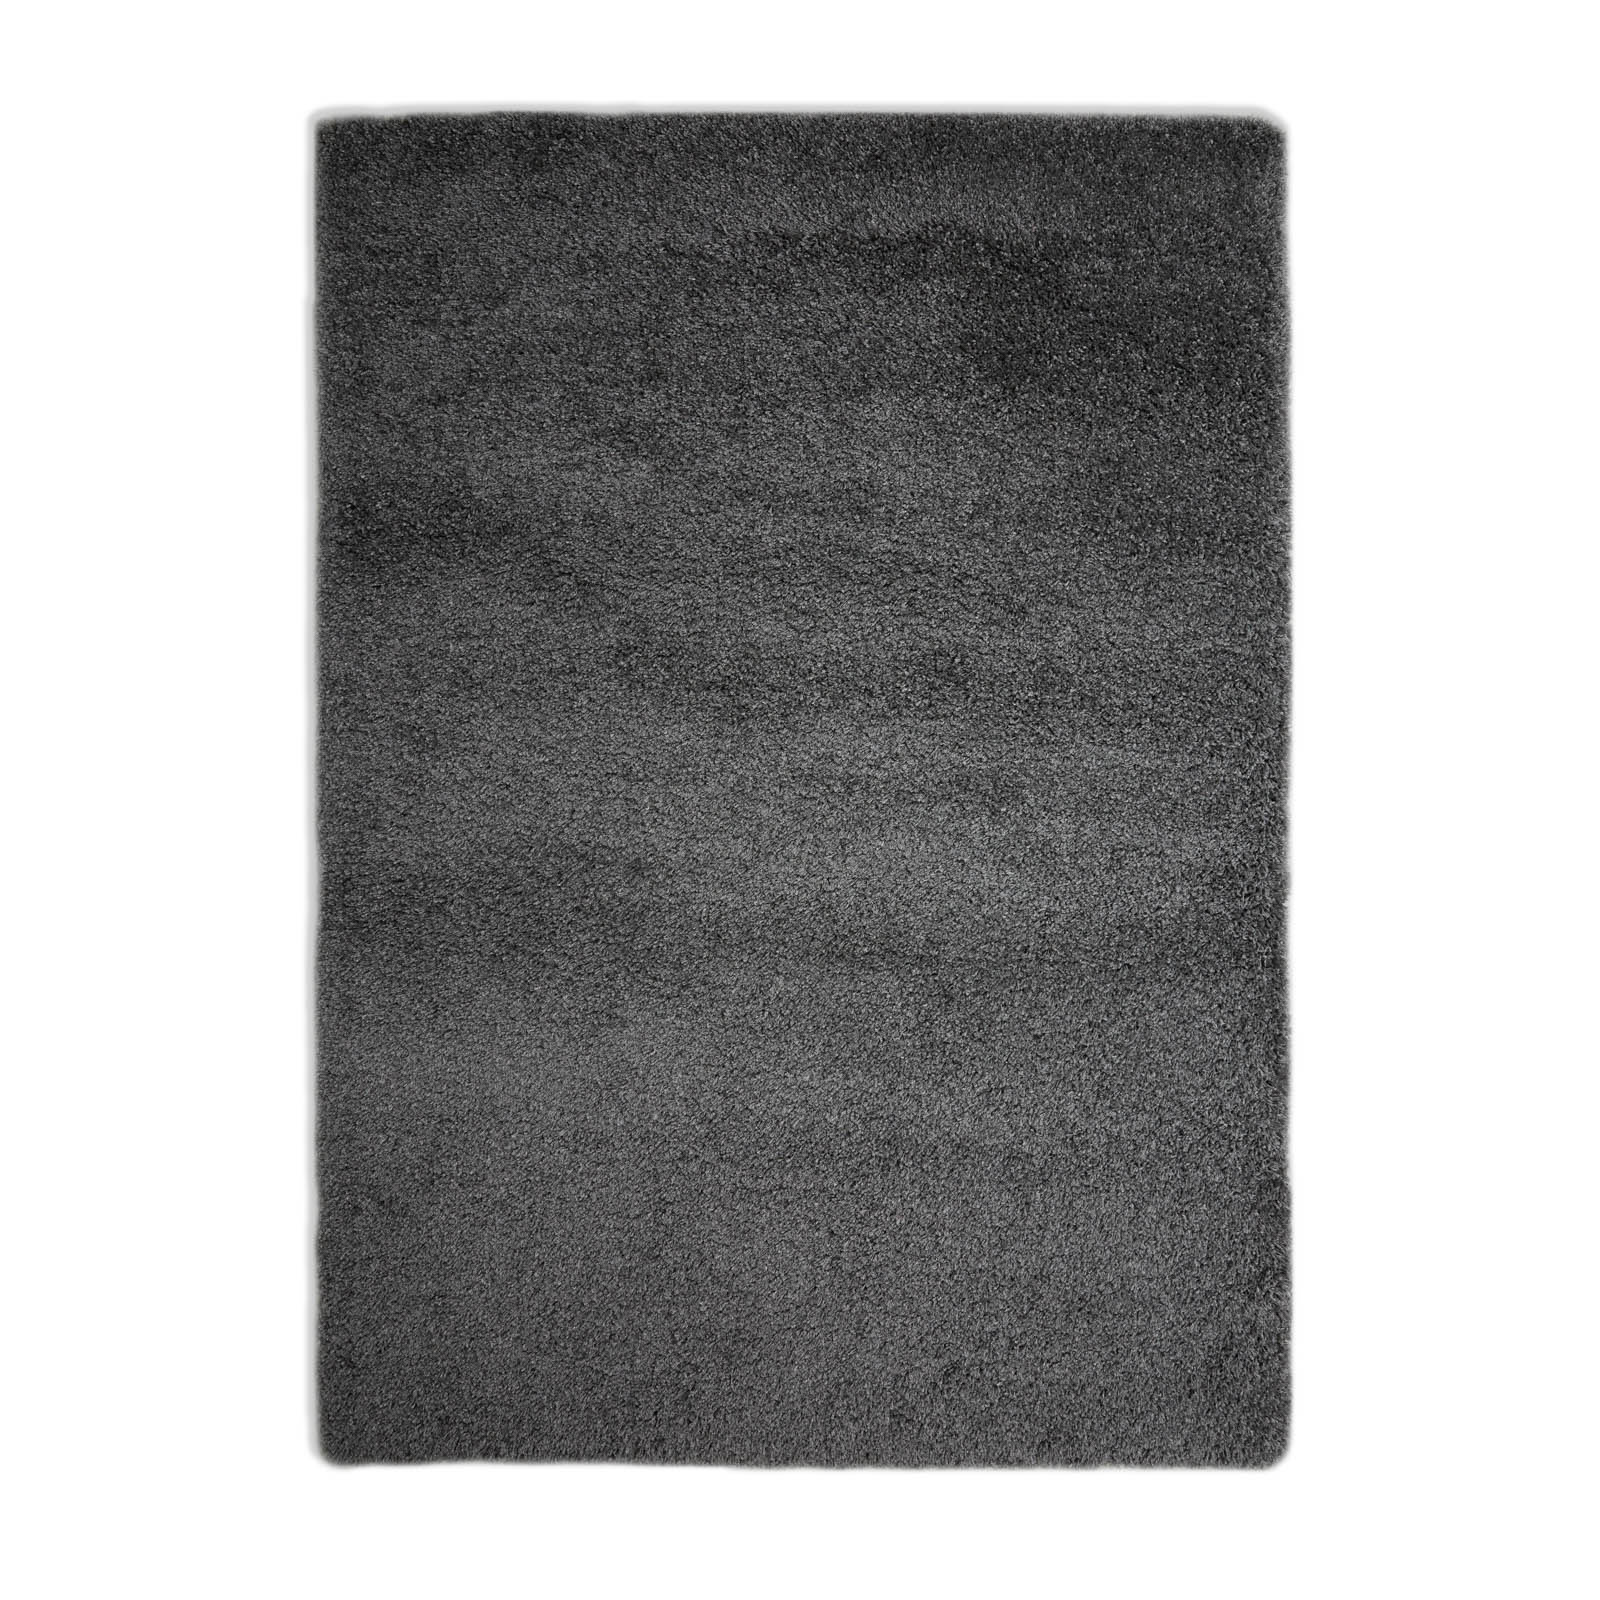 Purity Textures Rugs PTX07 in Grey